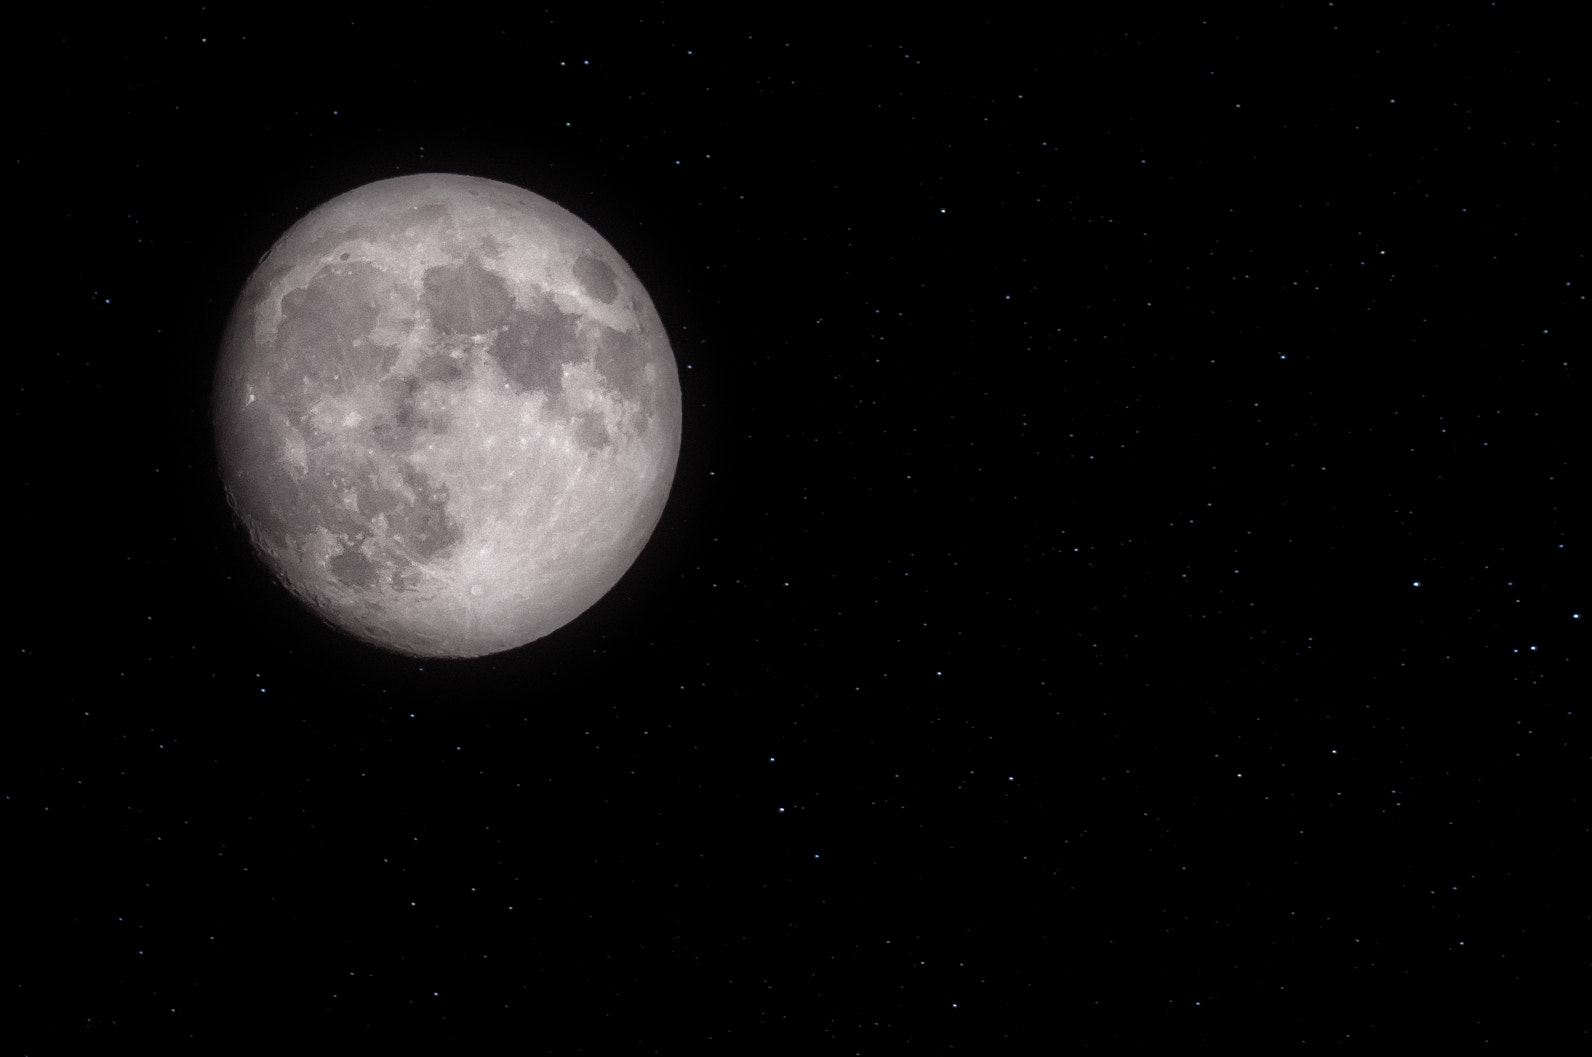 Photograph Moon by Fabian Löschner on 500px